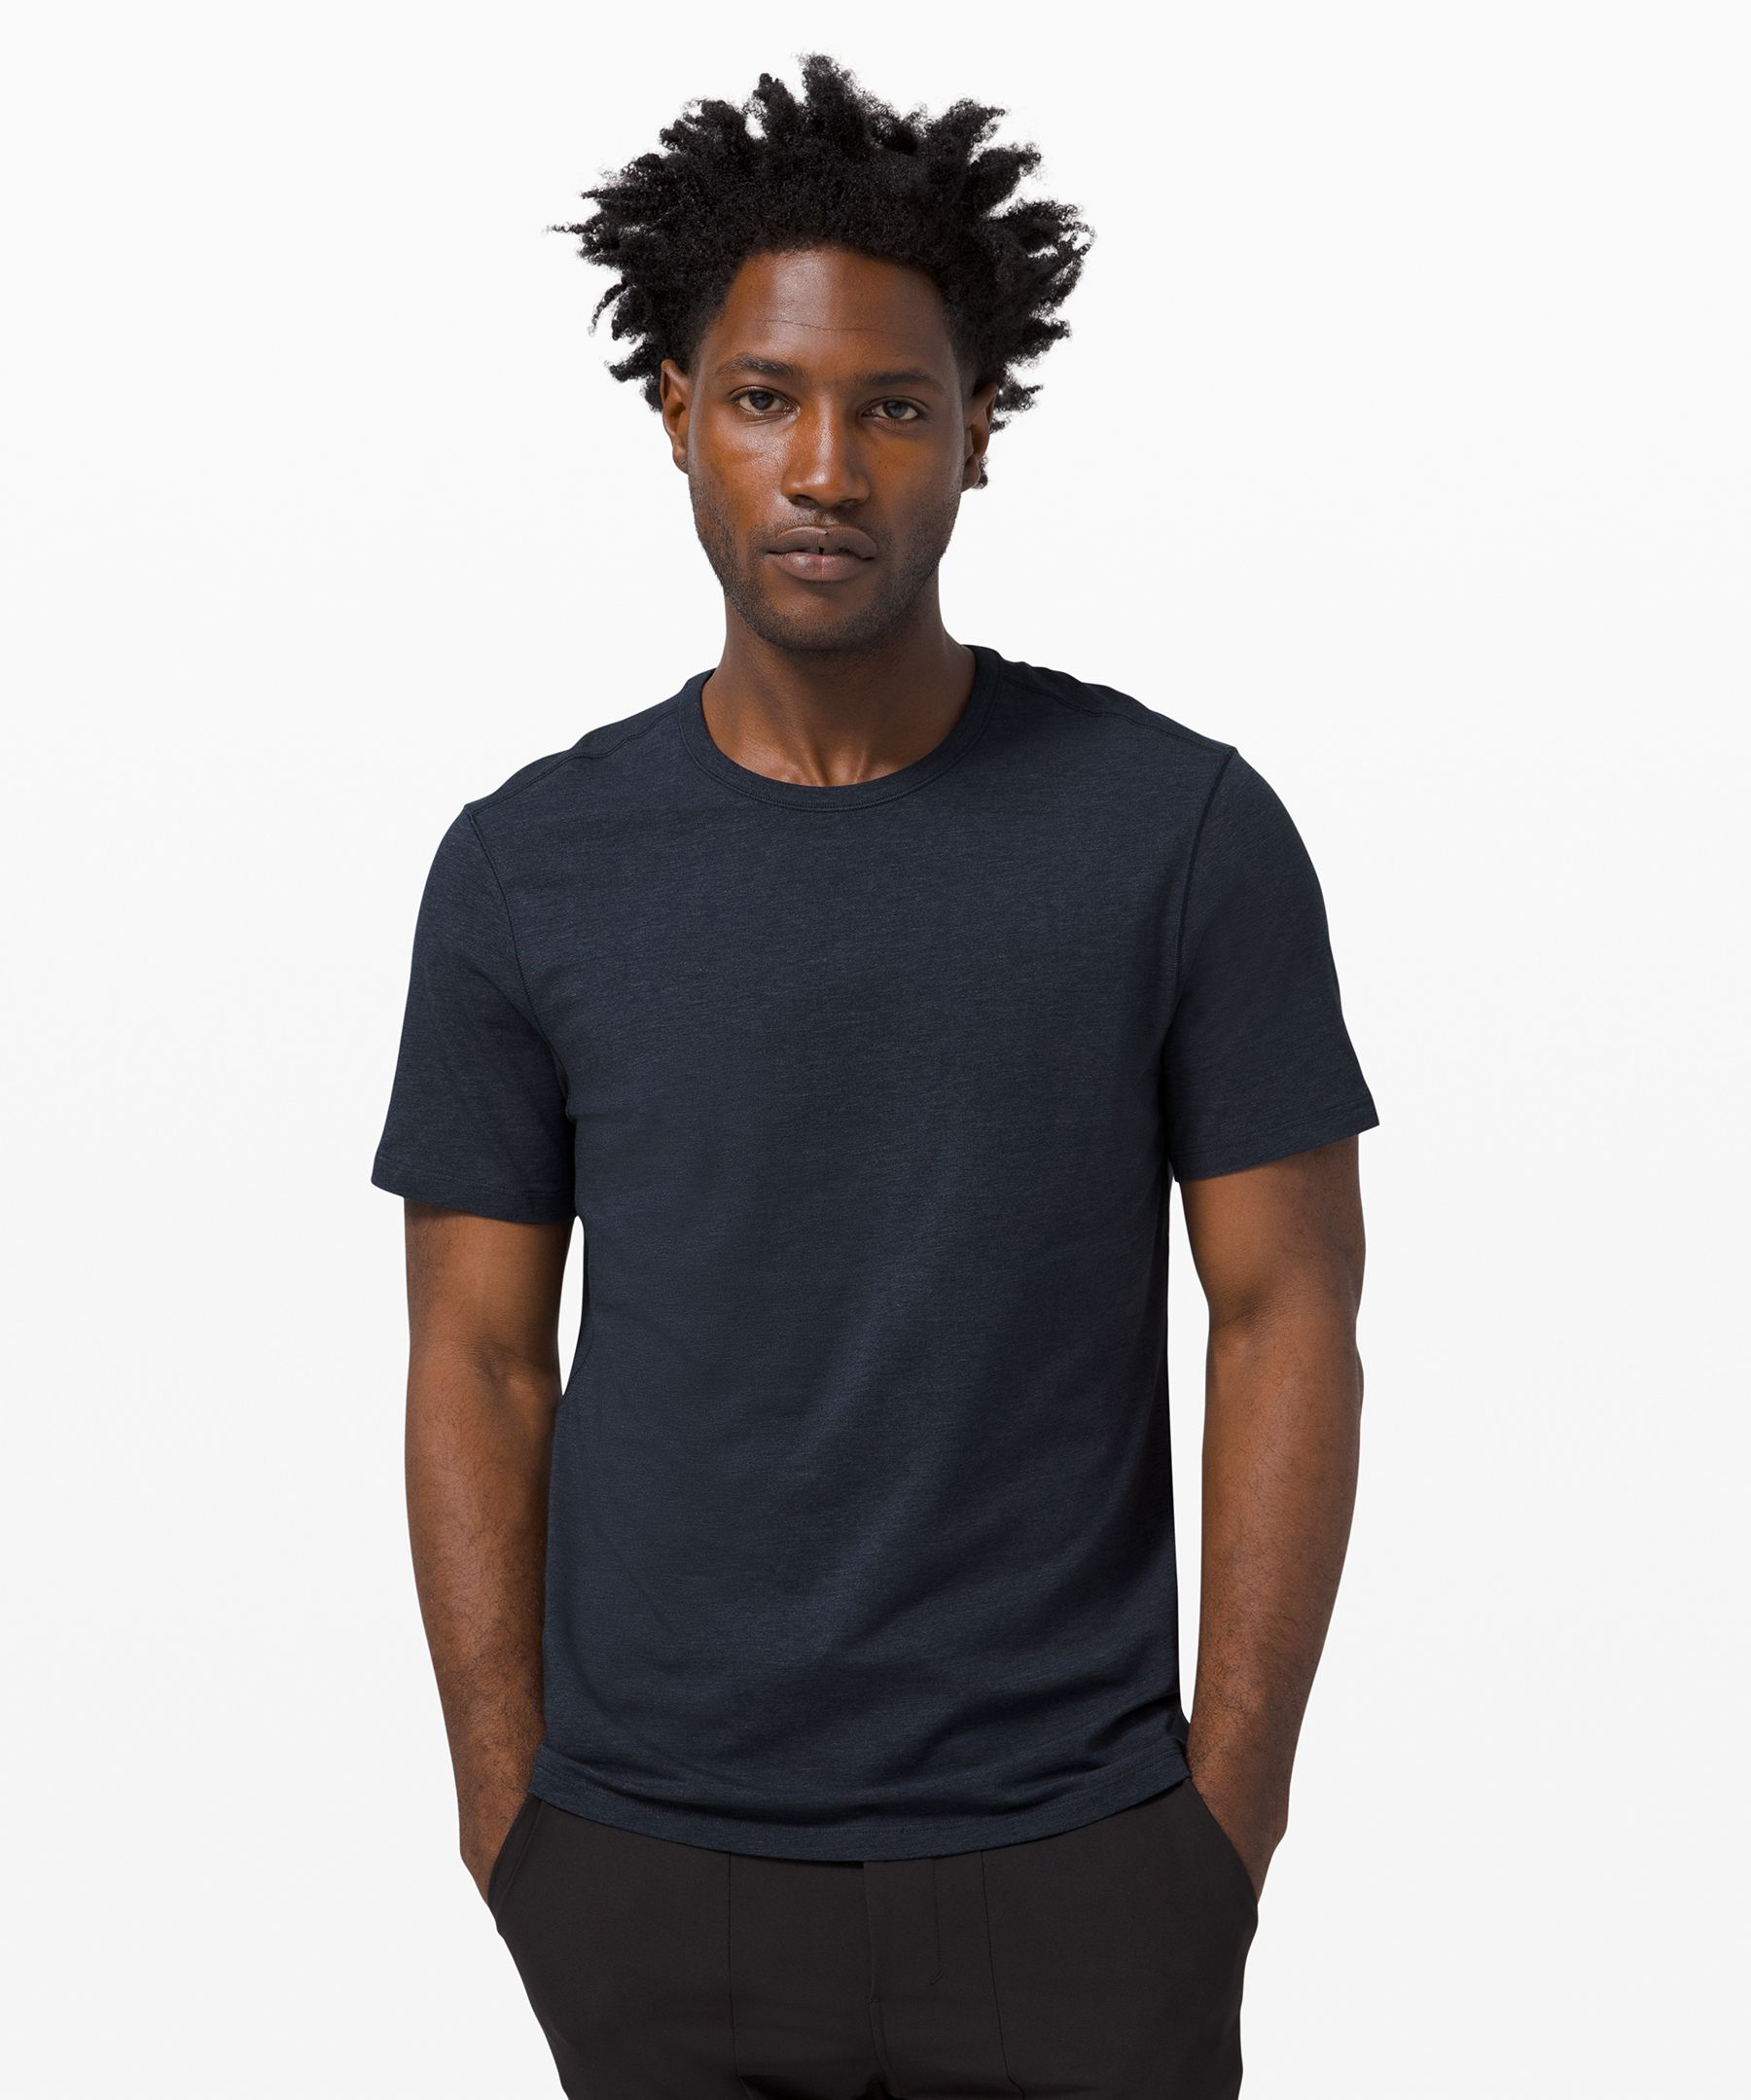 Our men's technical shirts, with wicking properties, are designed for yoga, running and working out. Complimentary shipping to Canada and the US.